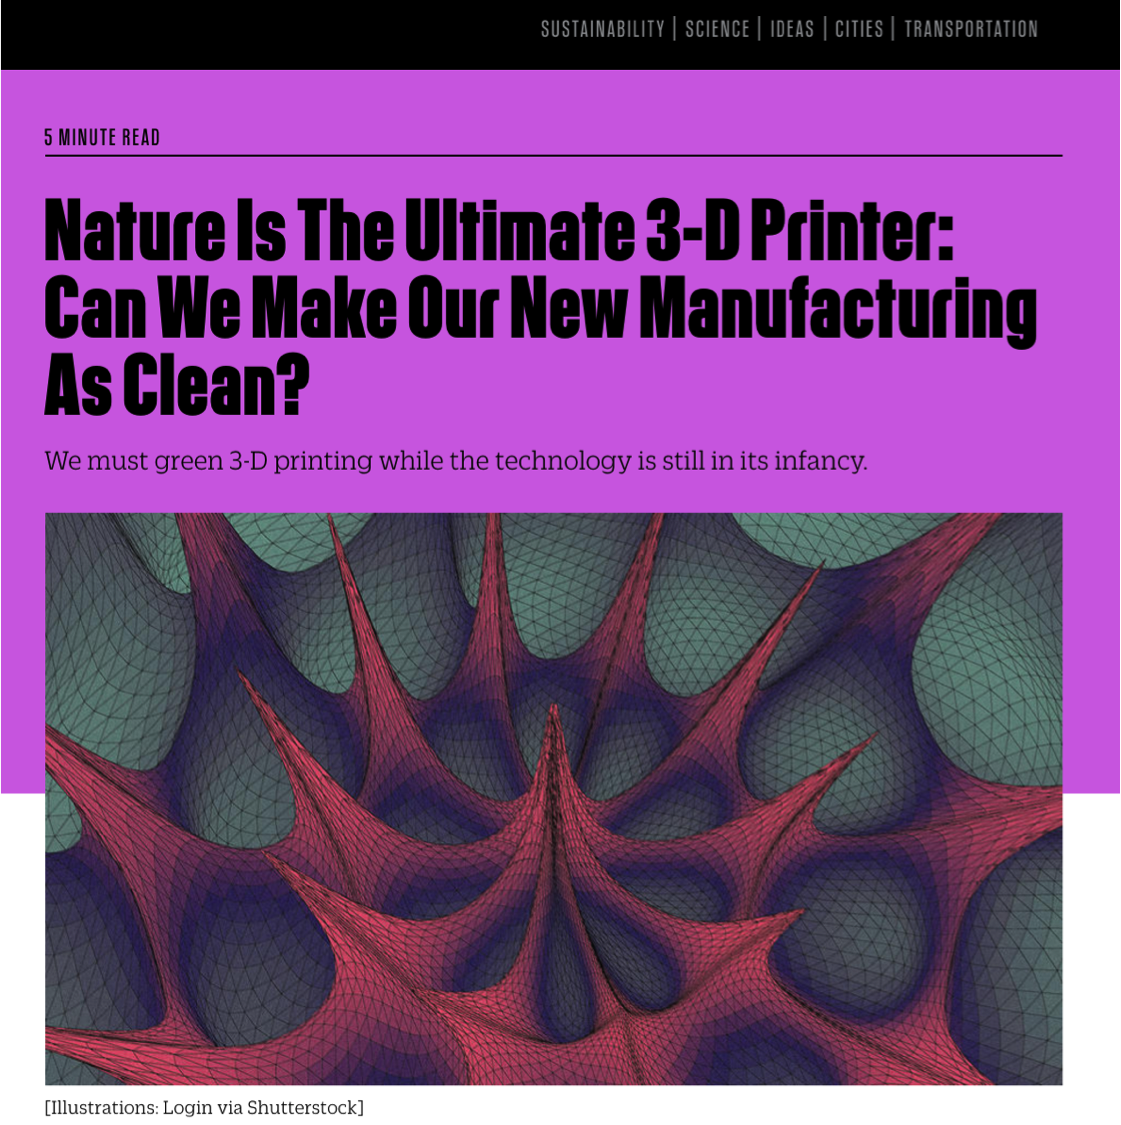 - Nature's recipes and structures for 3D printing